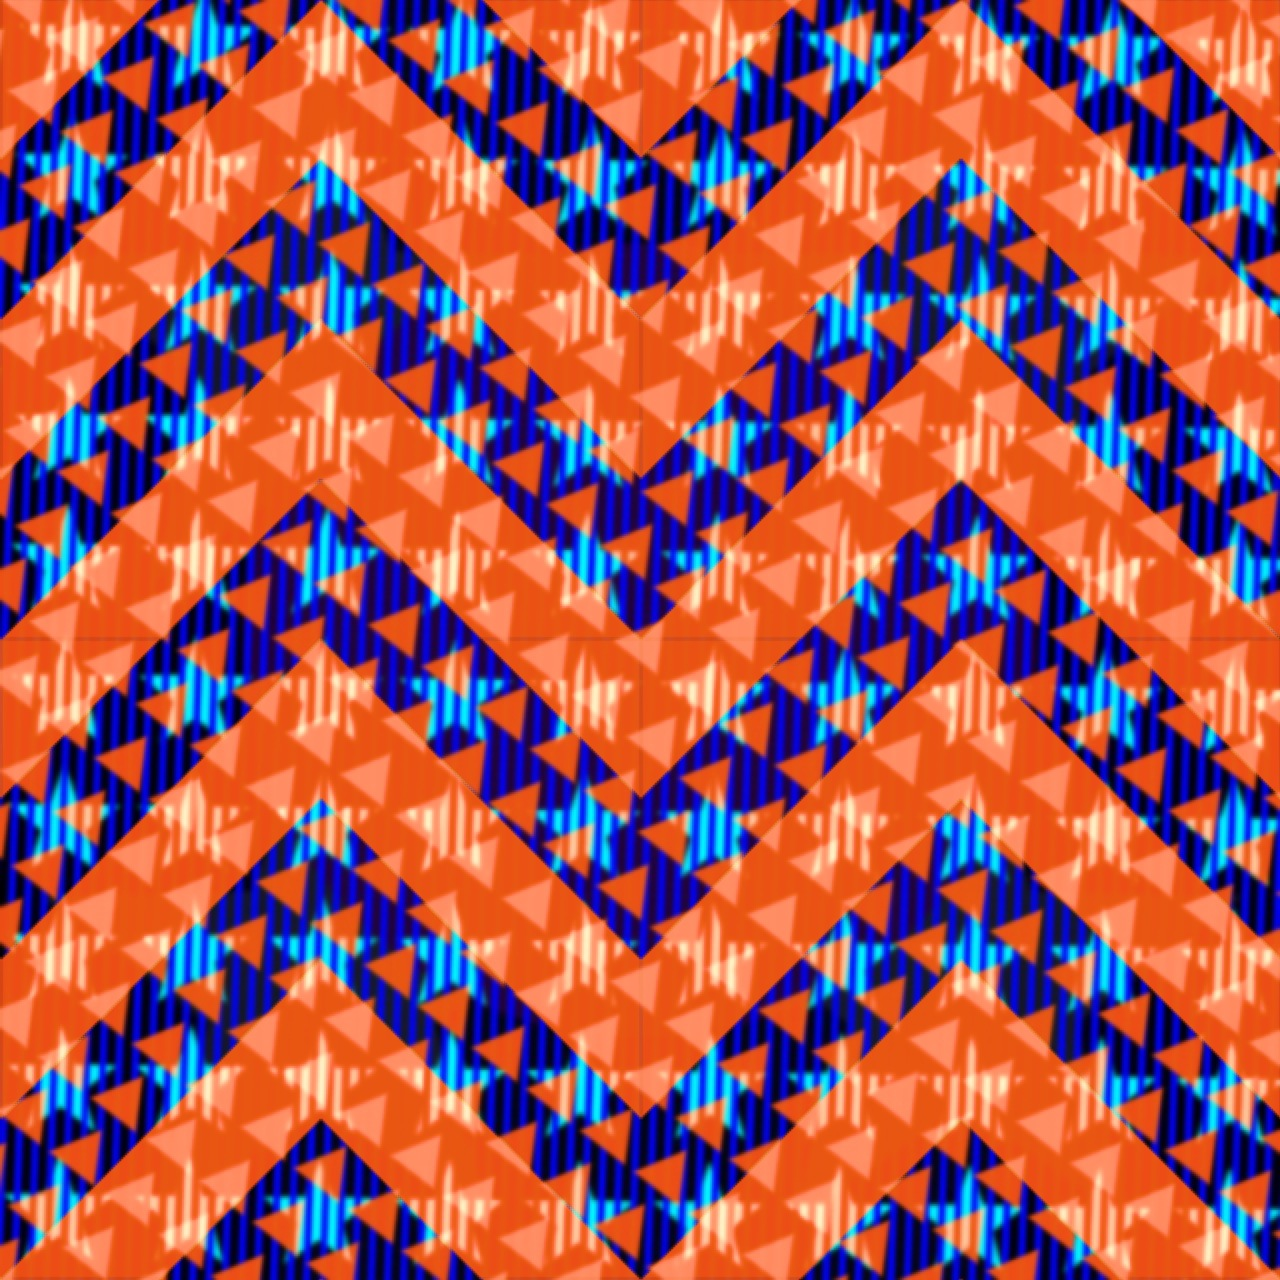 @thednalife created this pattern from scratch. No photo was taken or uploaded & this was built completely from scratch. Why is this cool?